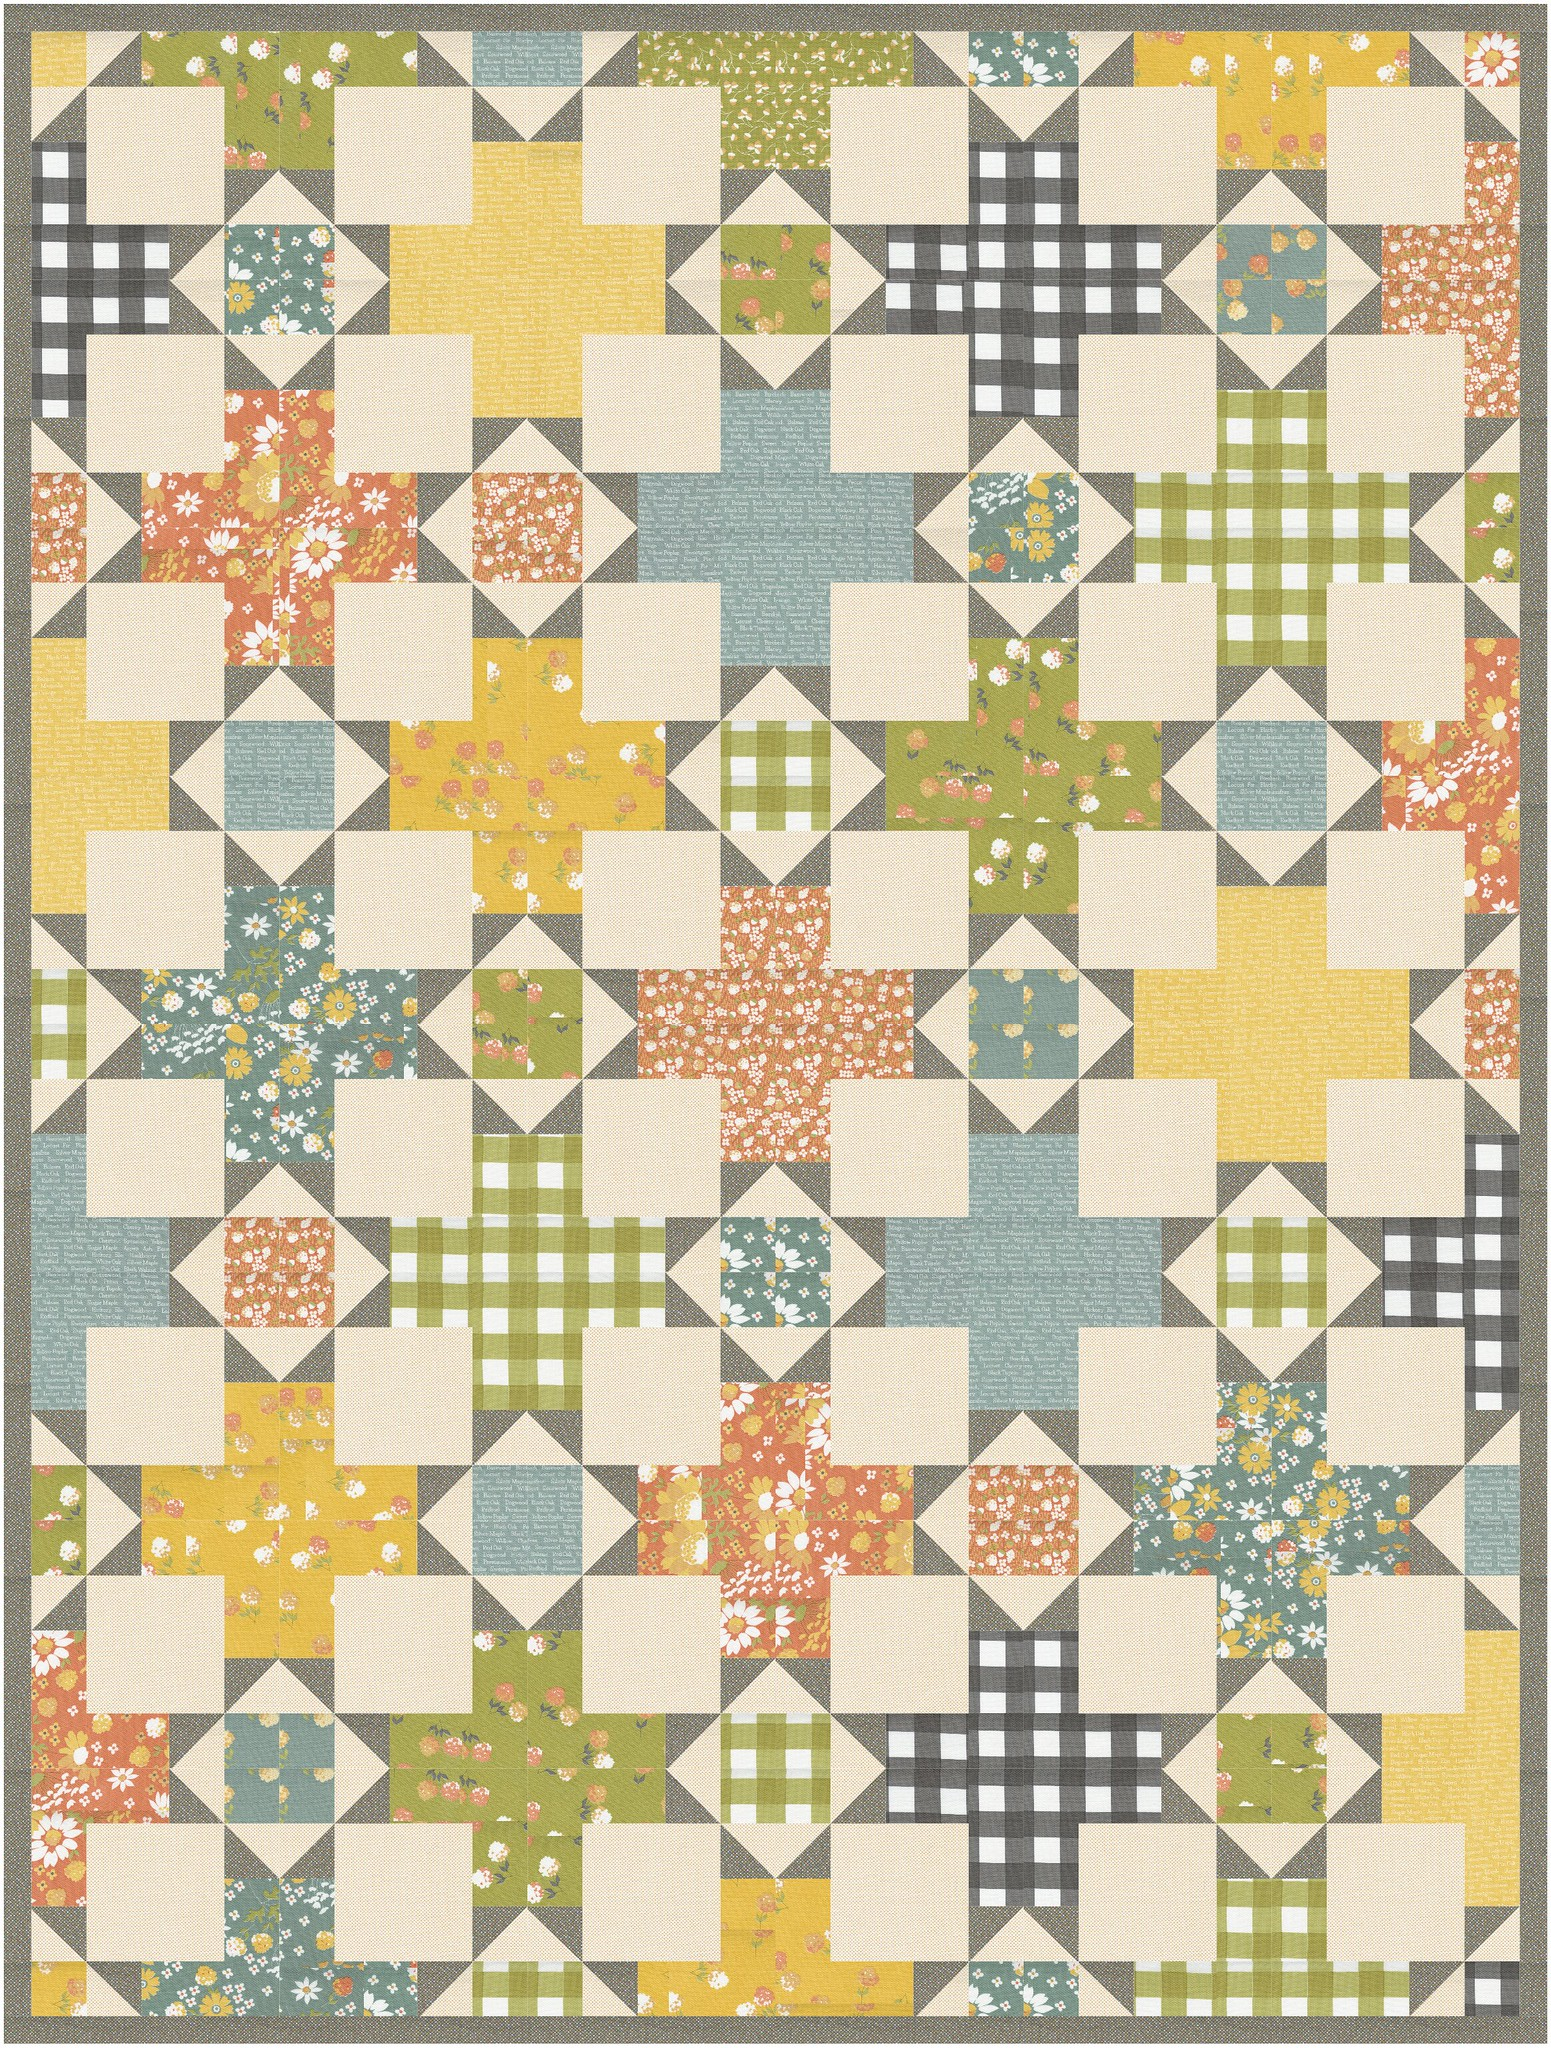 The Hazel Quilt in Cozy Up - Kitchen Table Quilting